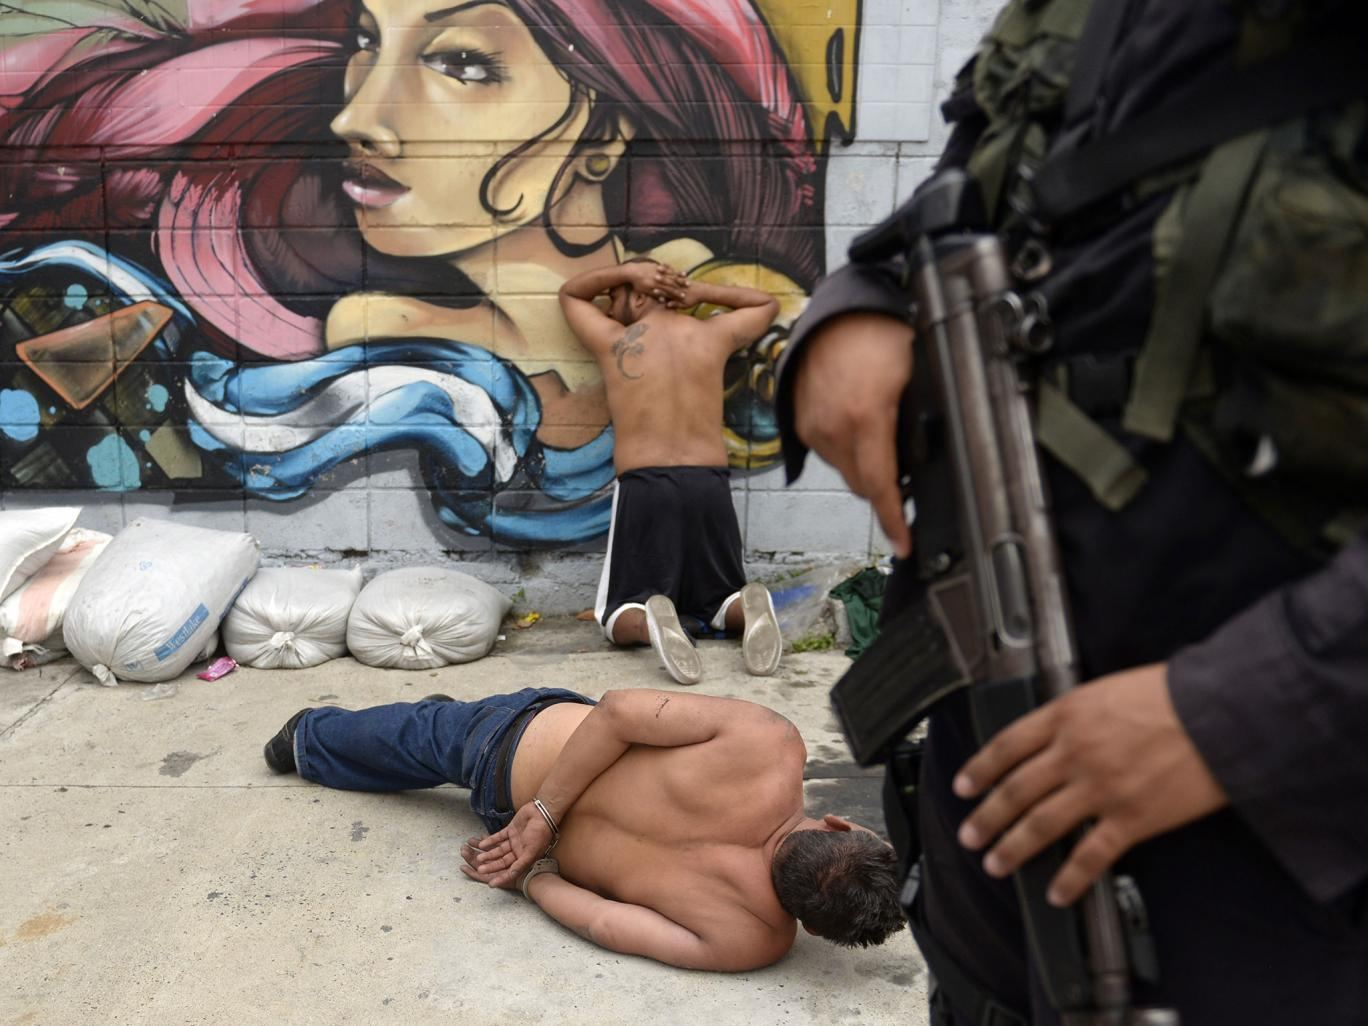 Members of the Barrio 18 gang are rounded up in San Salvador